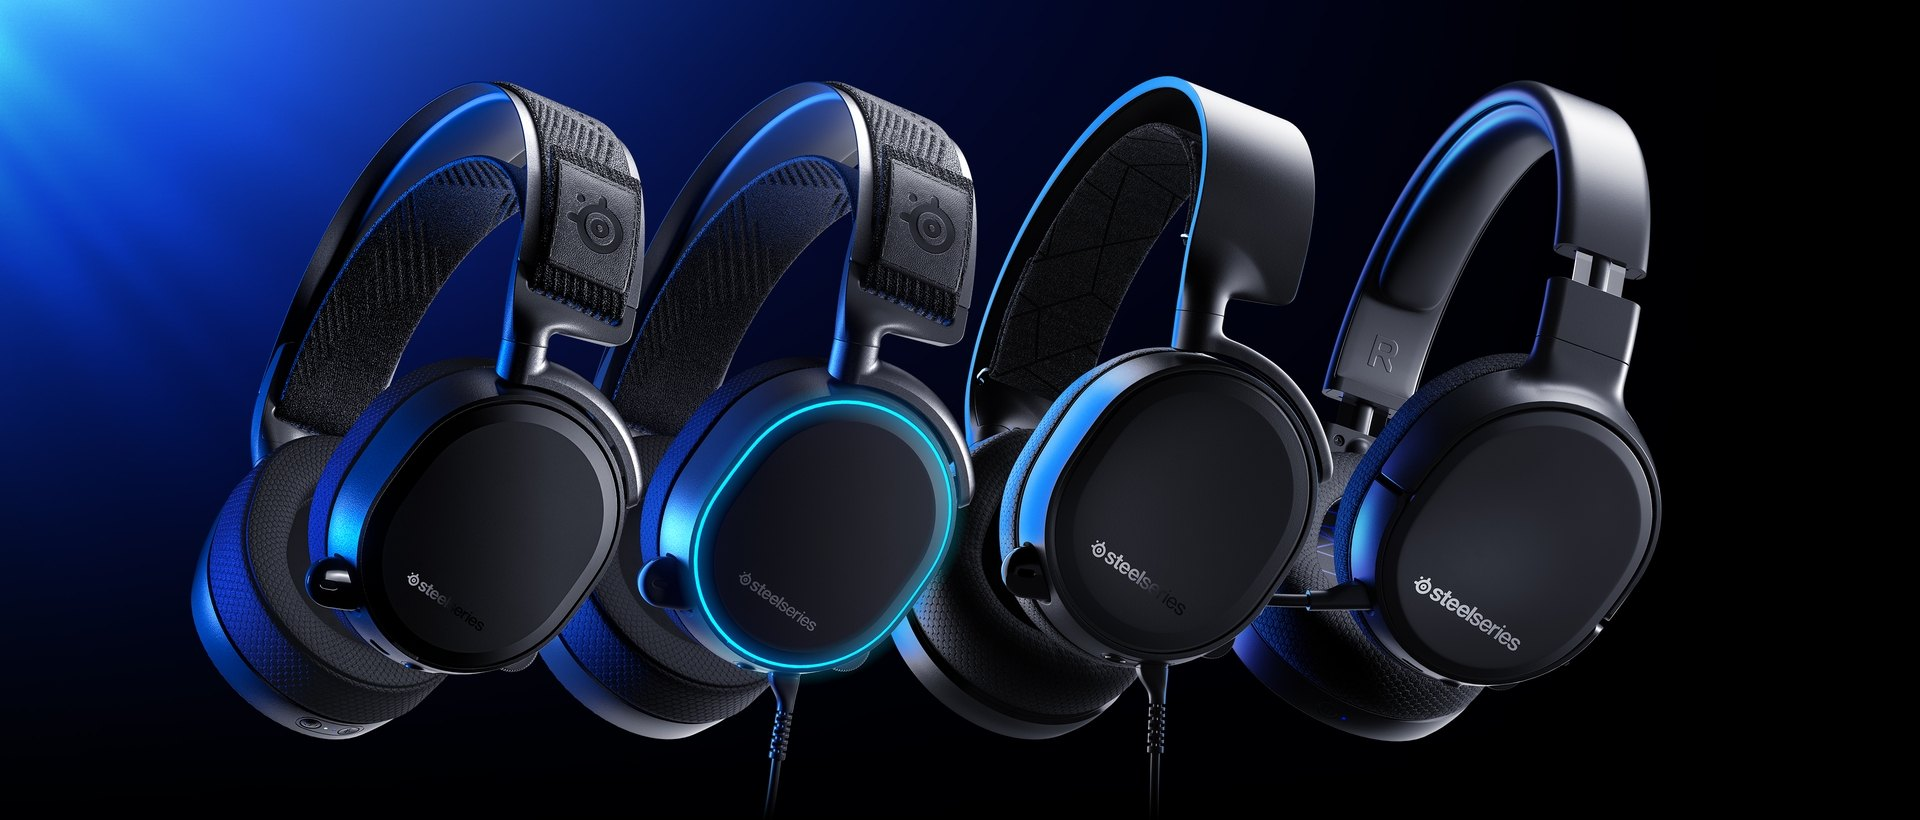 The PlayStation next gen compatible Arctis headsets